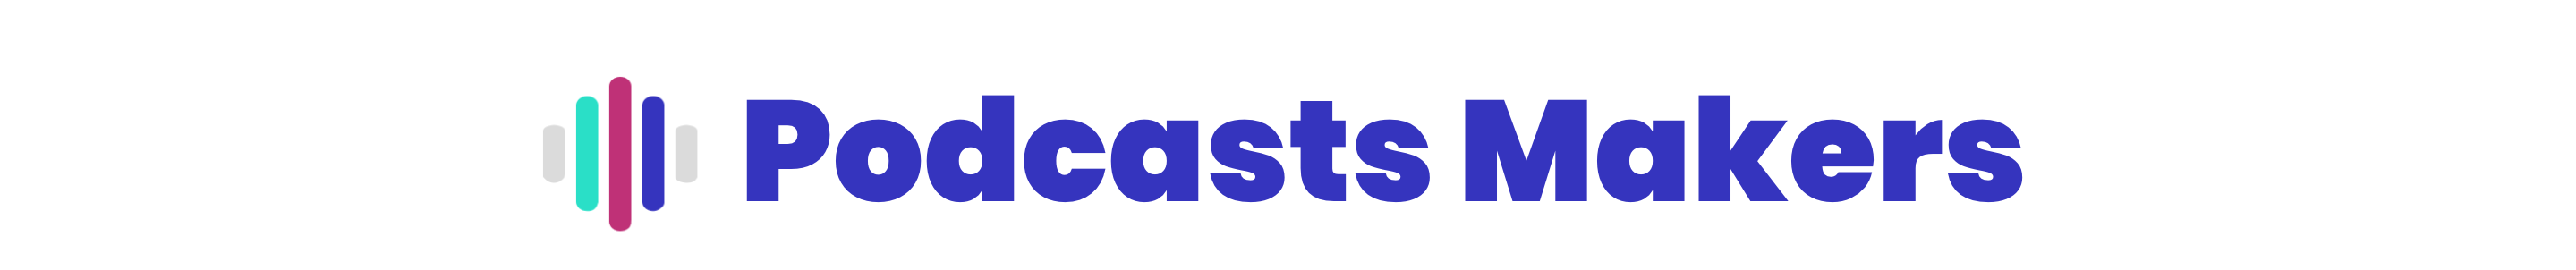 podcast makers logo